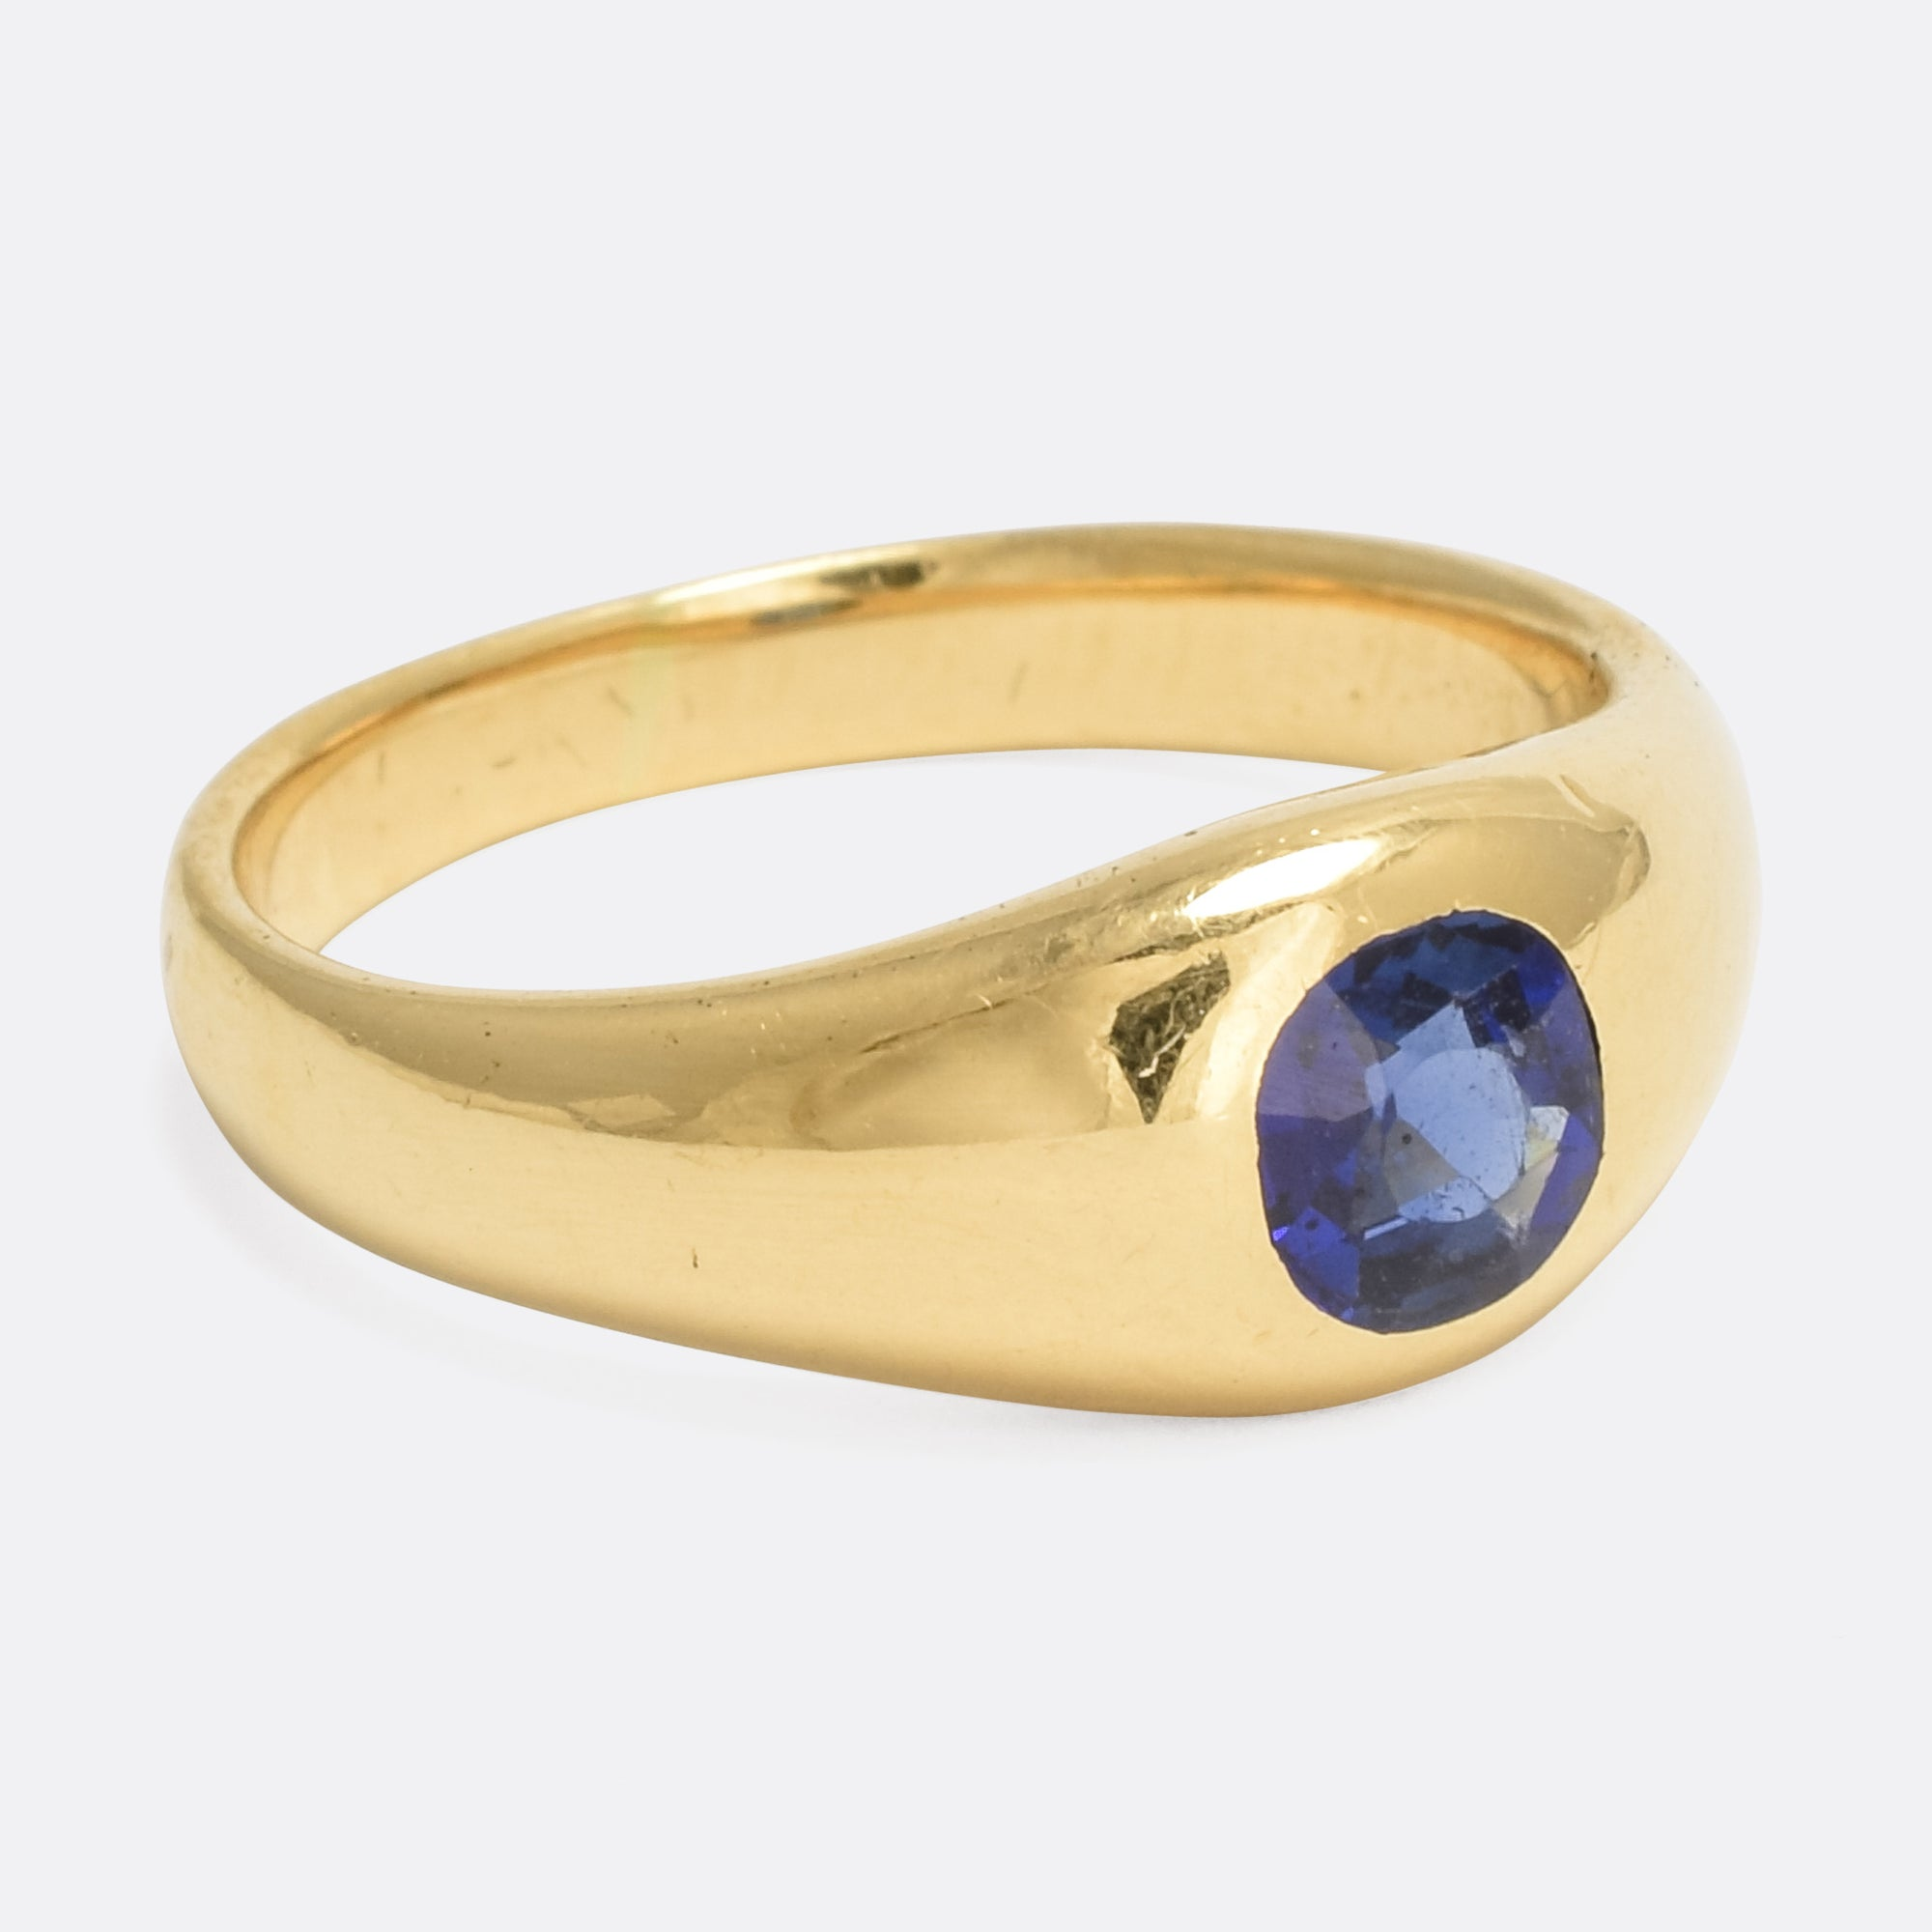 her cz white by pin gold blue marie solitaire sapphire on all pinterest sterling ring sizes jewelry for iris